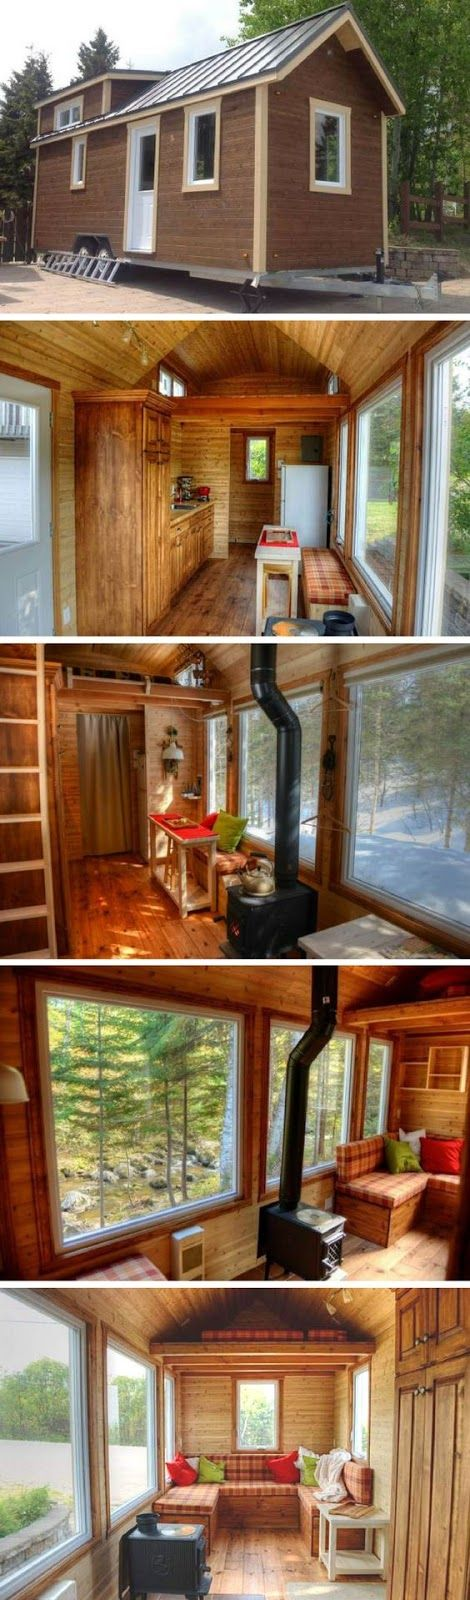 mytinyhousedirectory: DIY Quebec Tiny House ~ Beautiful